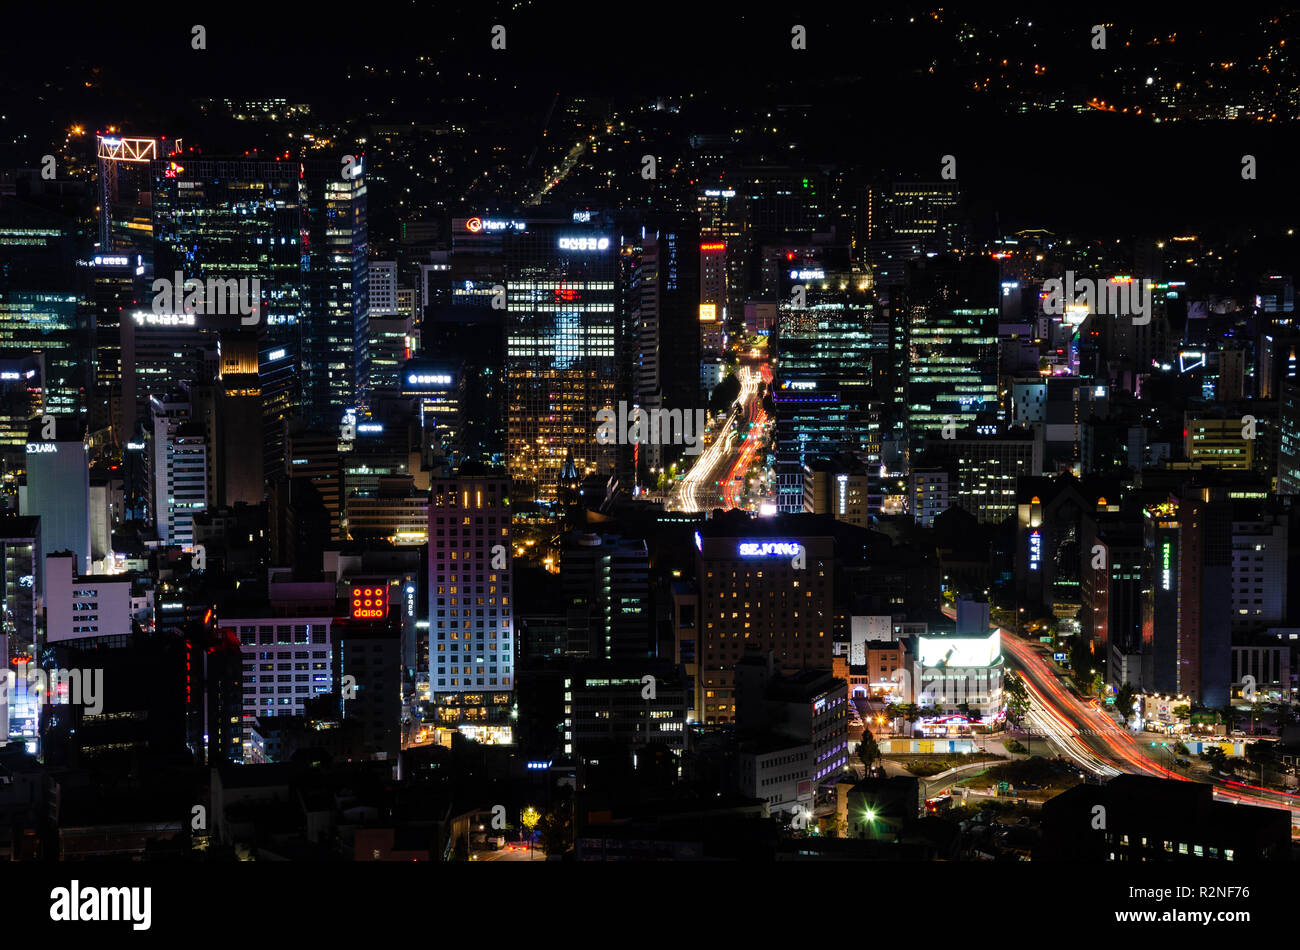 a-view-of-the-city-of-seoul-below-at-night-lit-up-with-city-lights-taken-form-a-high-vantage-point-next-to-namsan-tower-seoul-south-korea-R2NF76.jpg